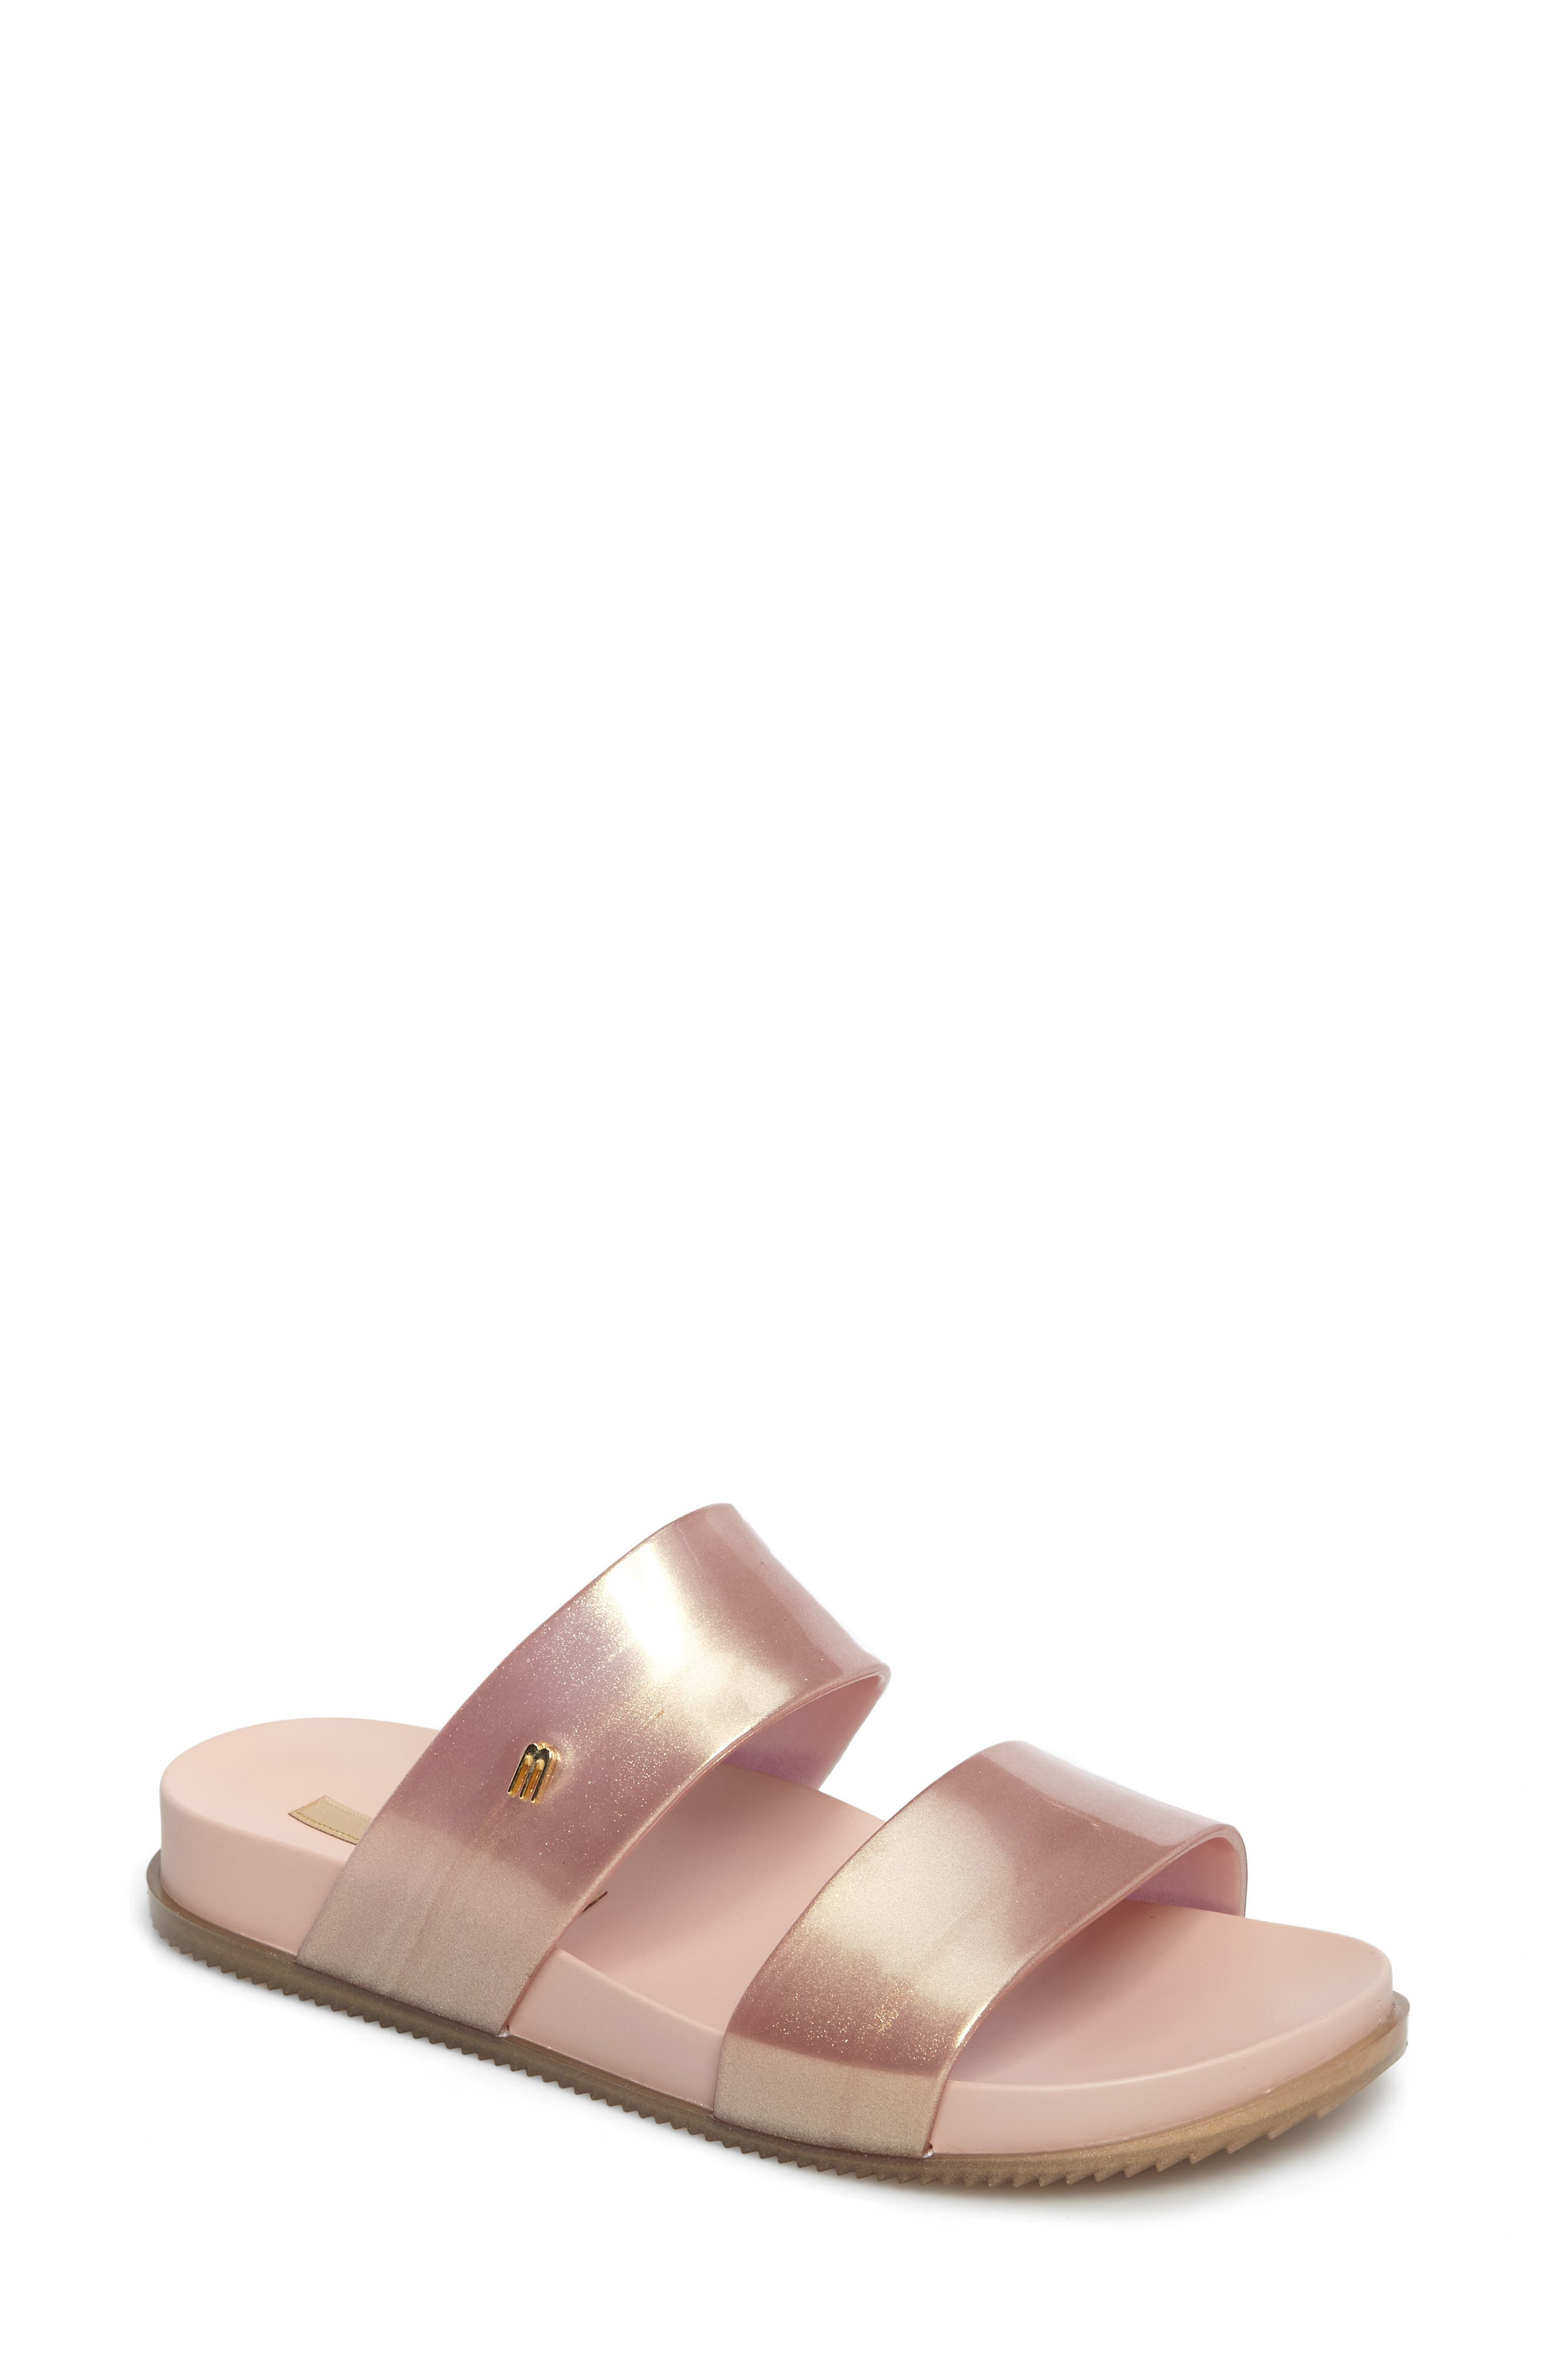 'Cosmic' Sandal,                         Main,                         color, 688